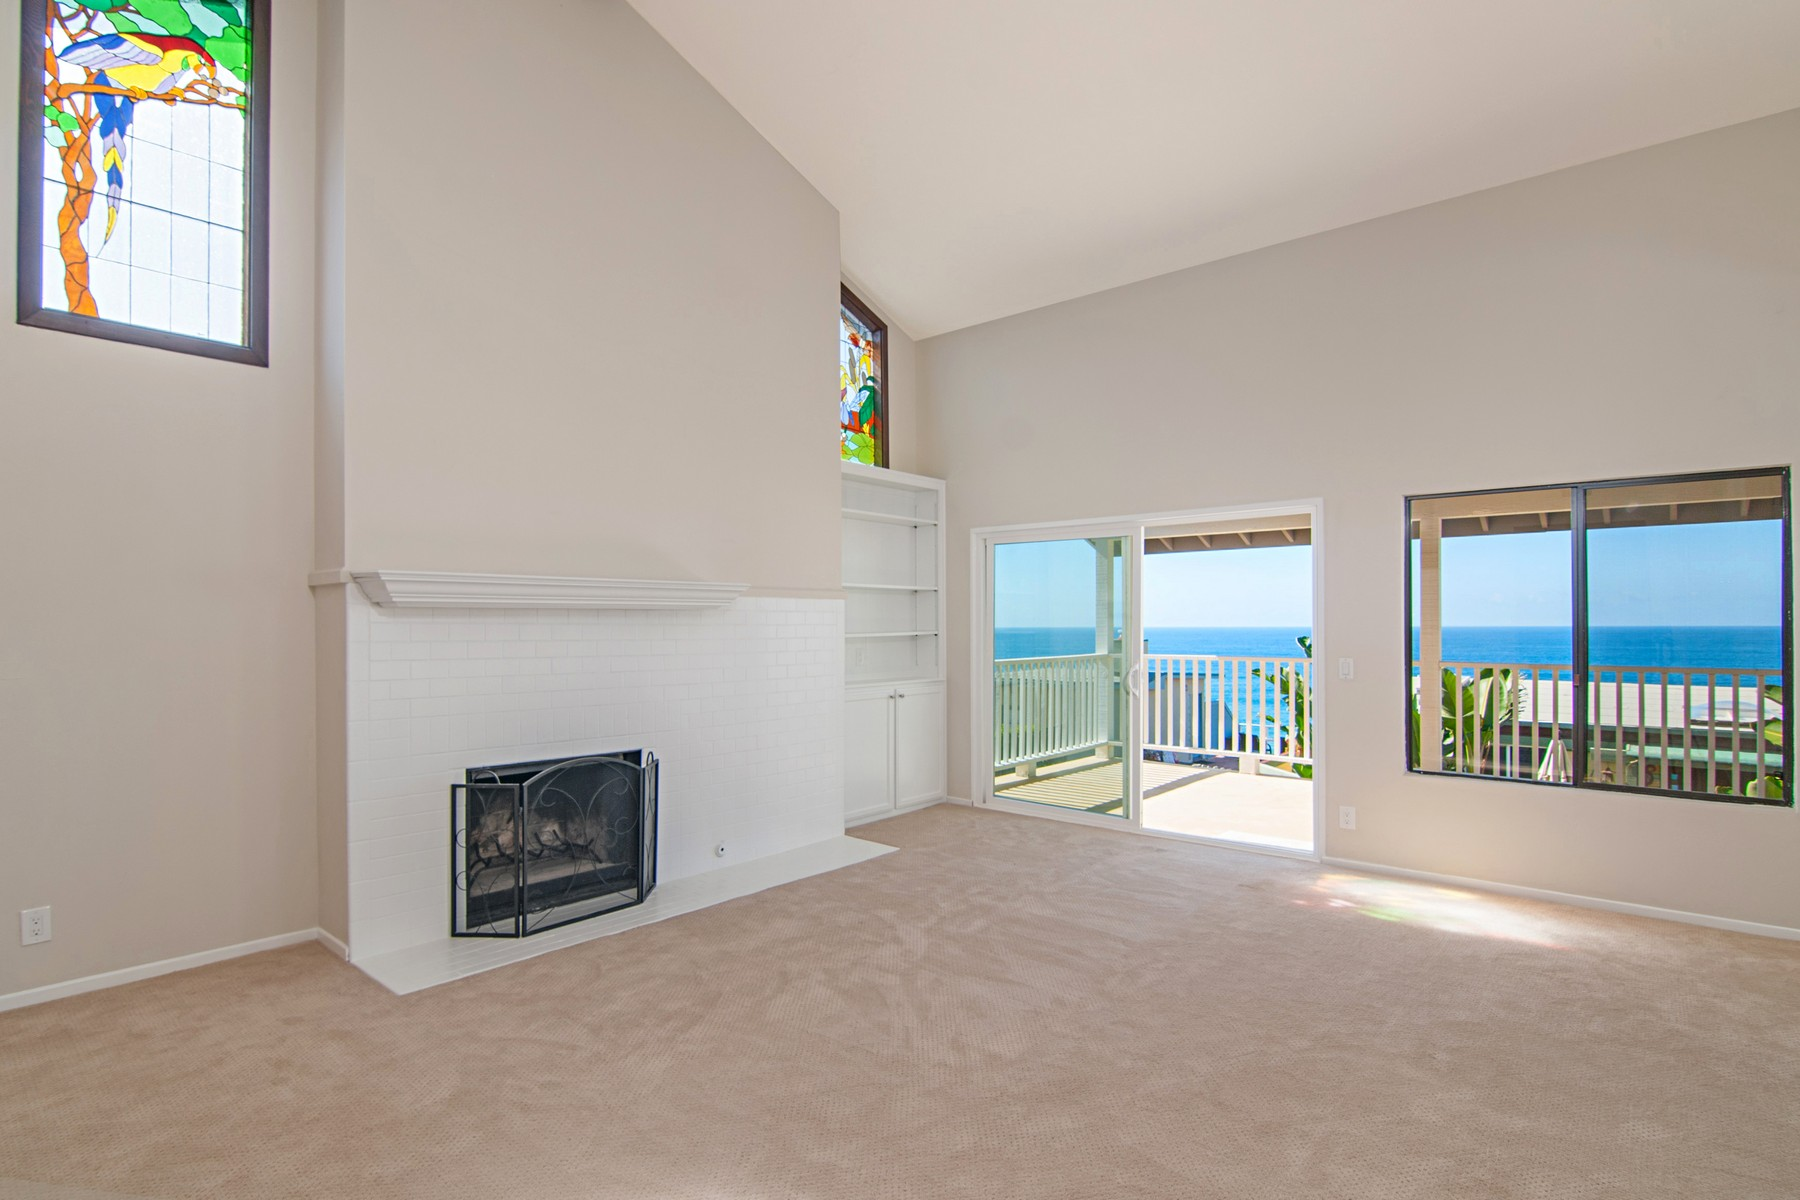 Additional photo for property listing at 522 4th Street #B 522 4th Street A Encinitas, California 92024 United States